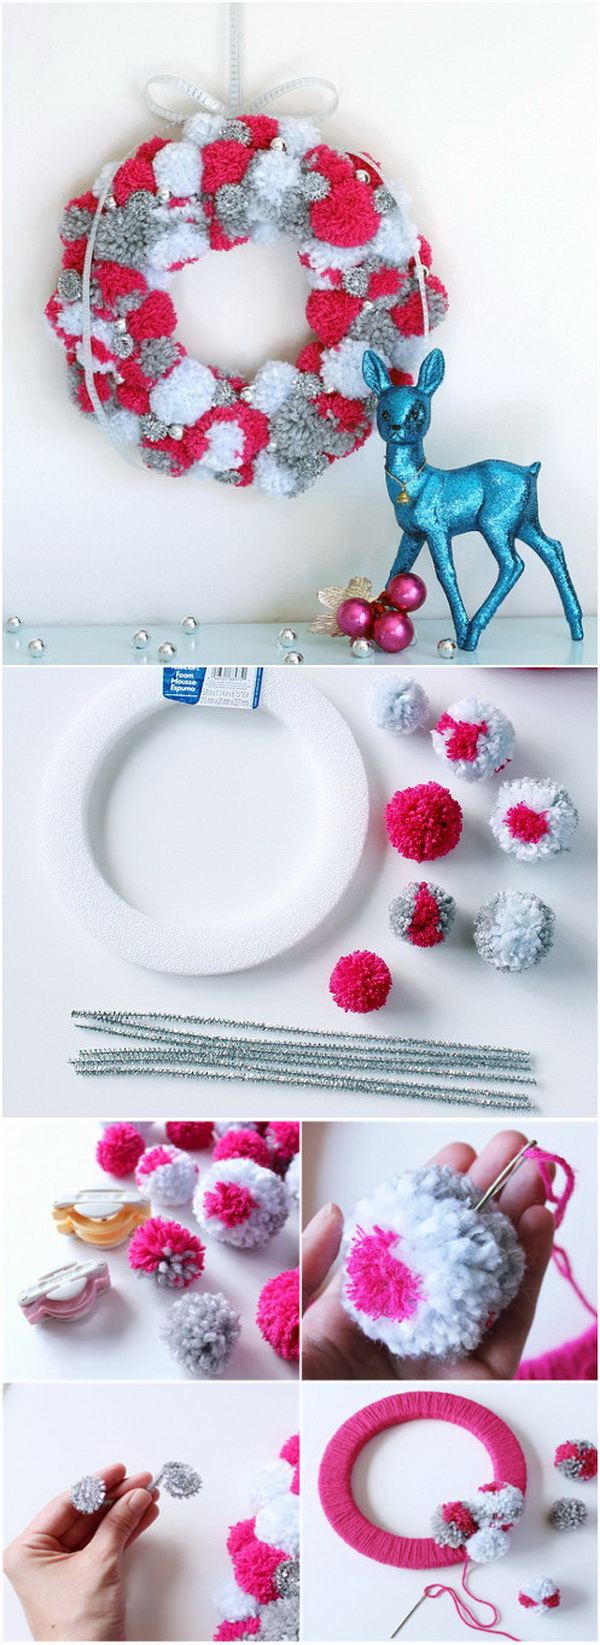 DIY Holiday Pompom Wreath.